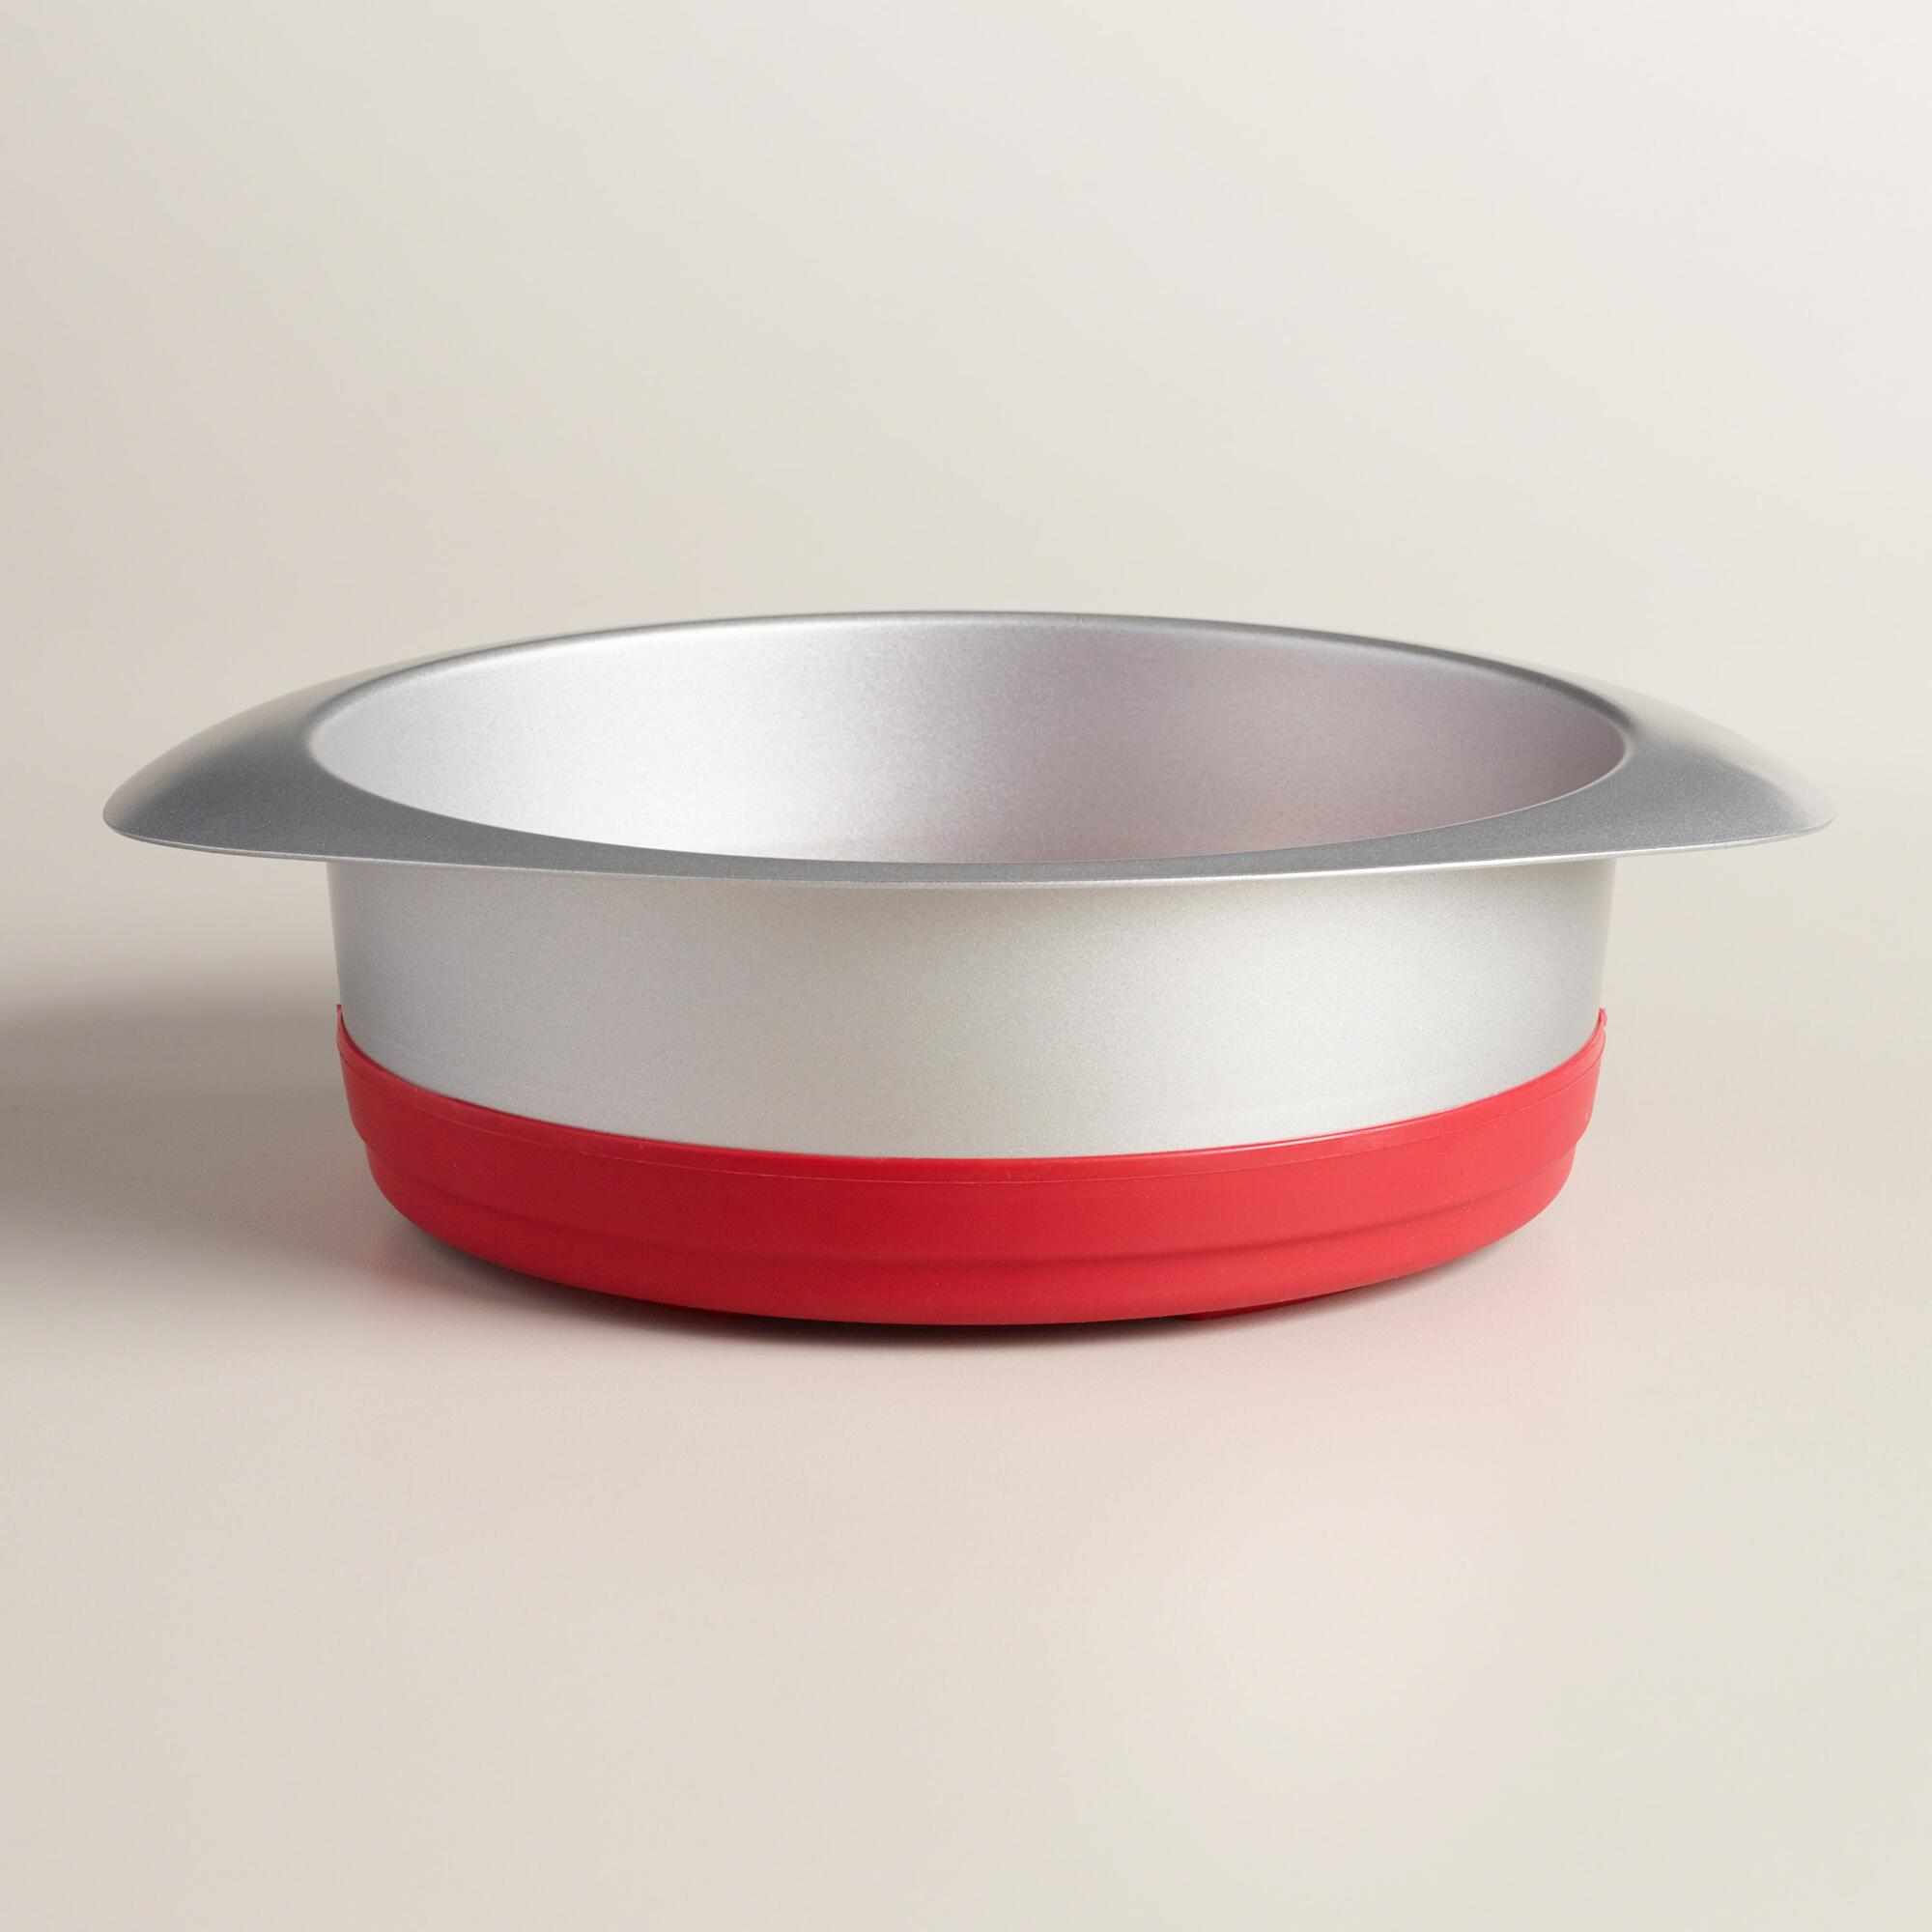 World Market Steel and Silicone Pop Out Cake Pan